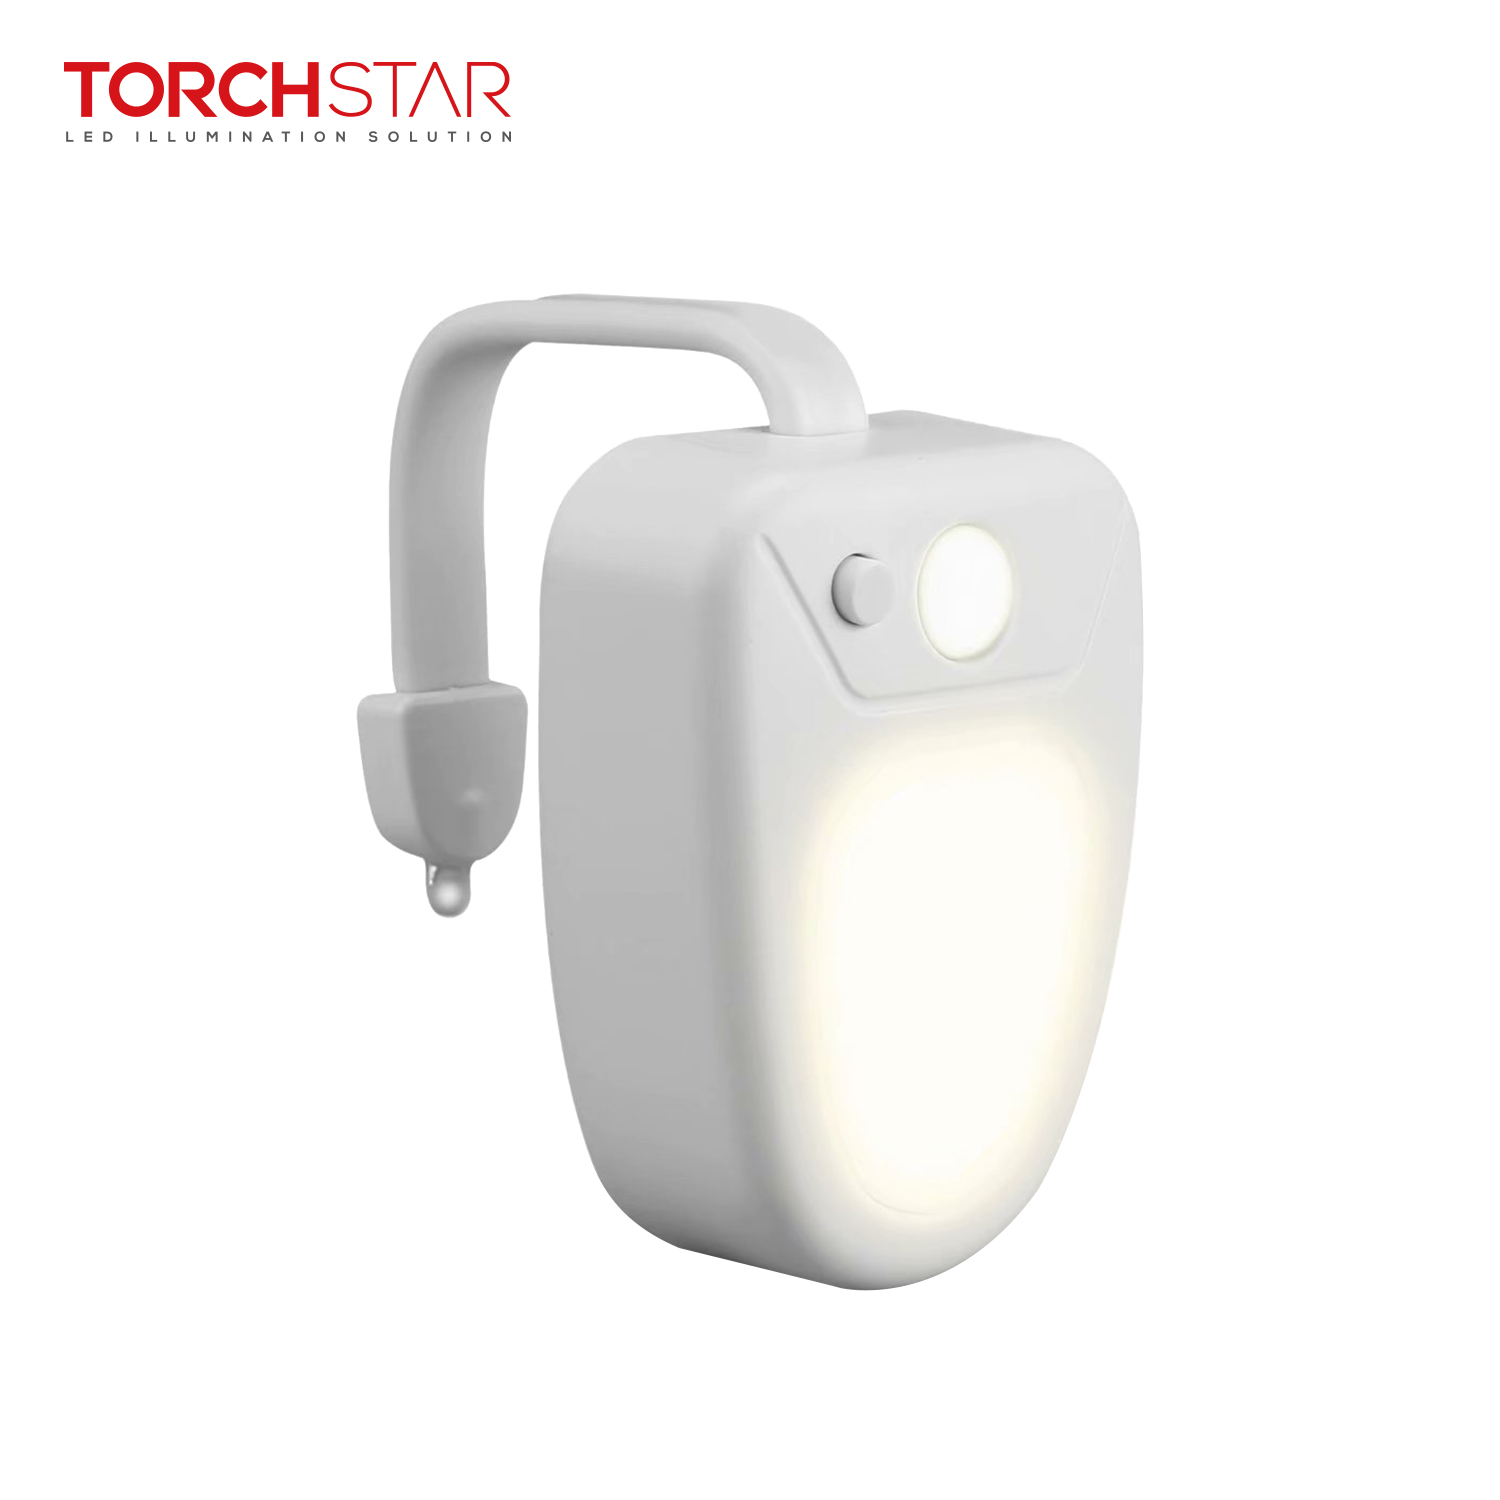 torchstar led toilet light toilet light 21934